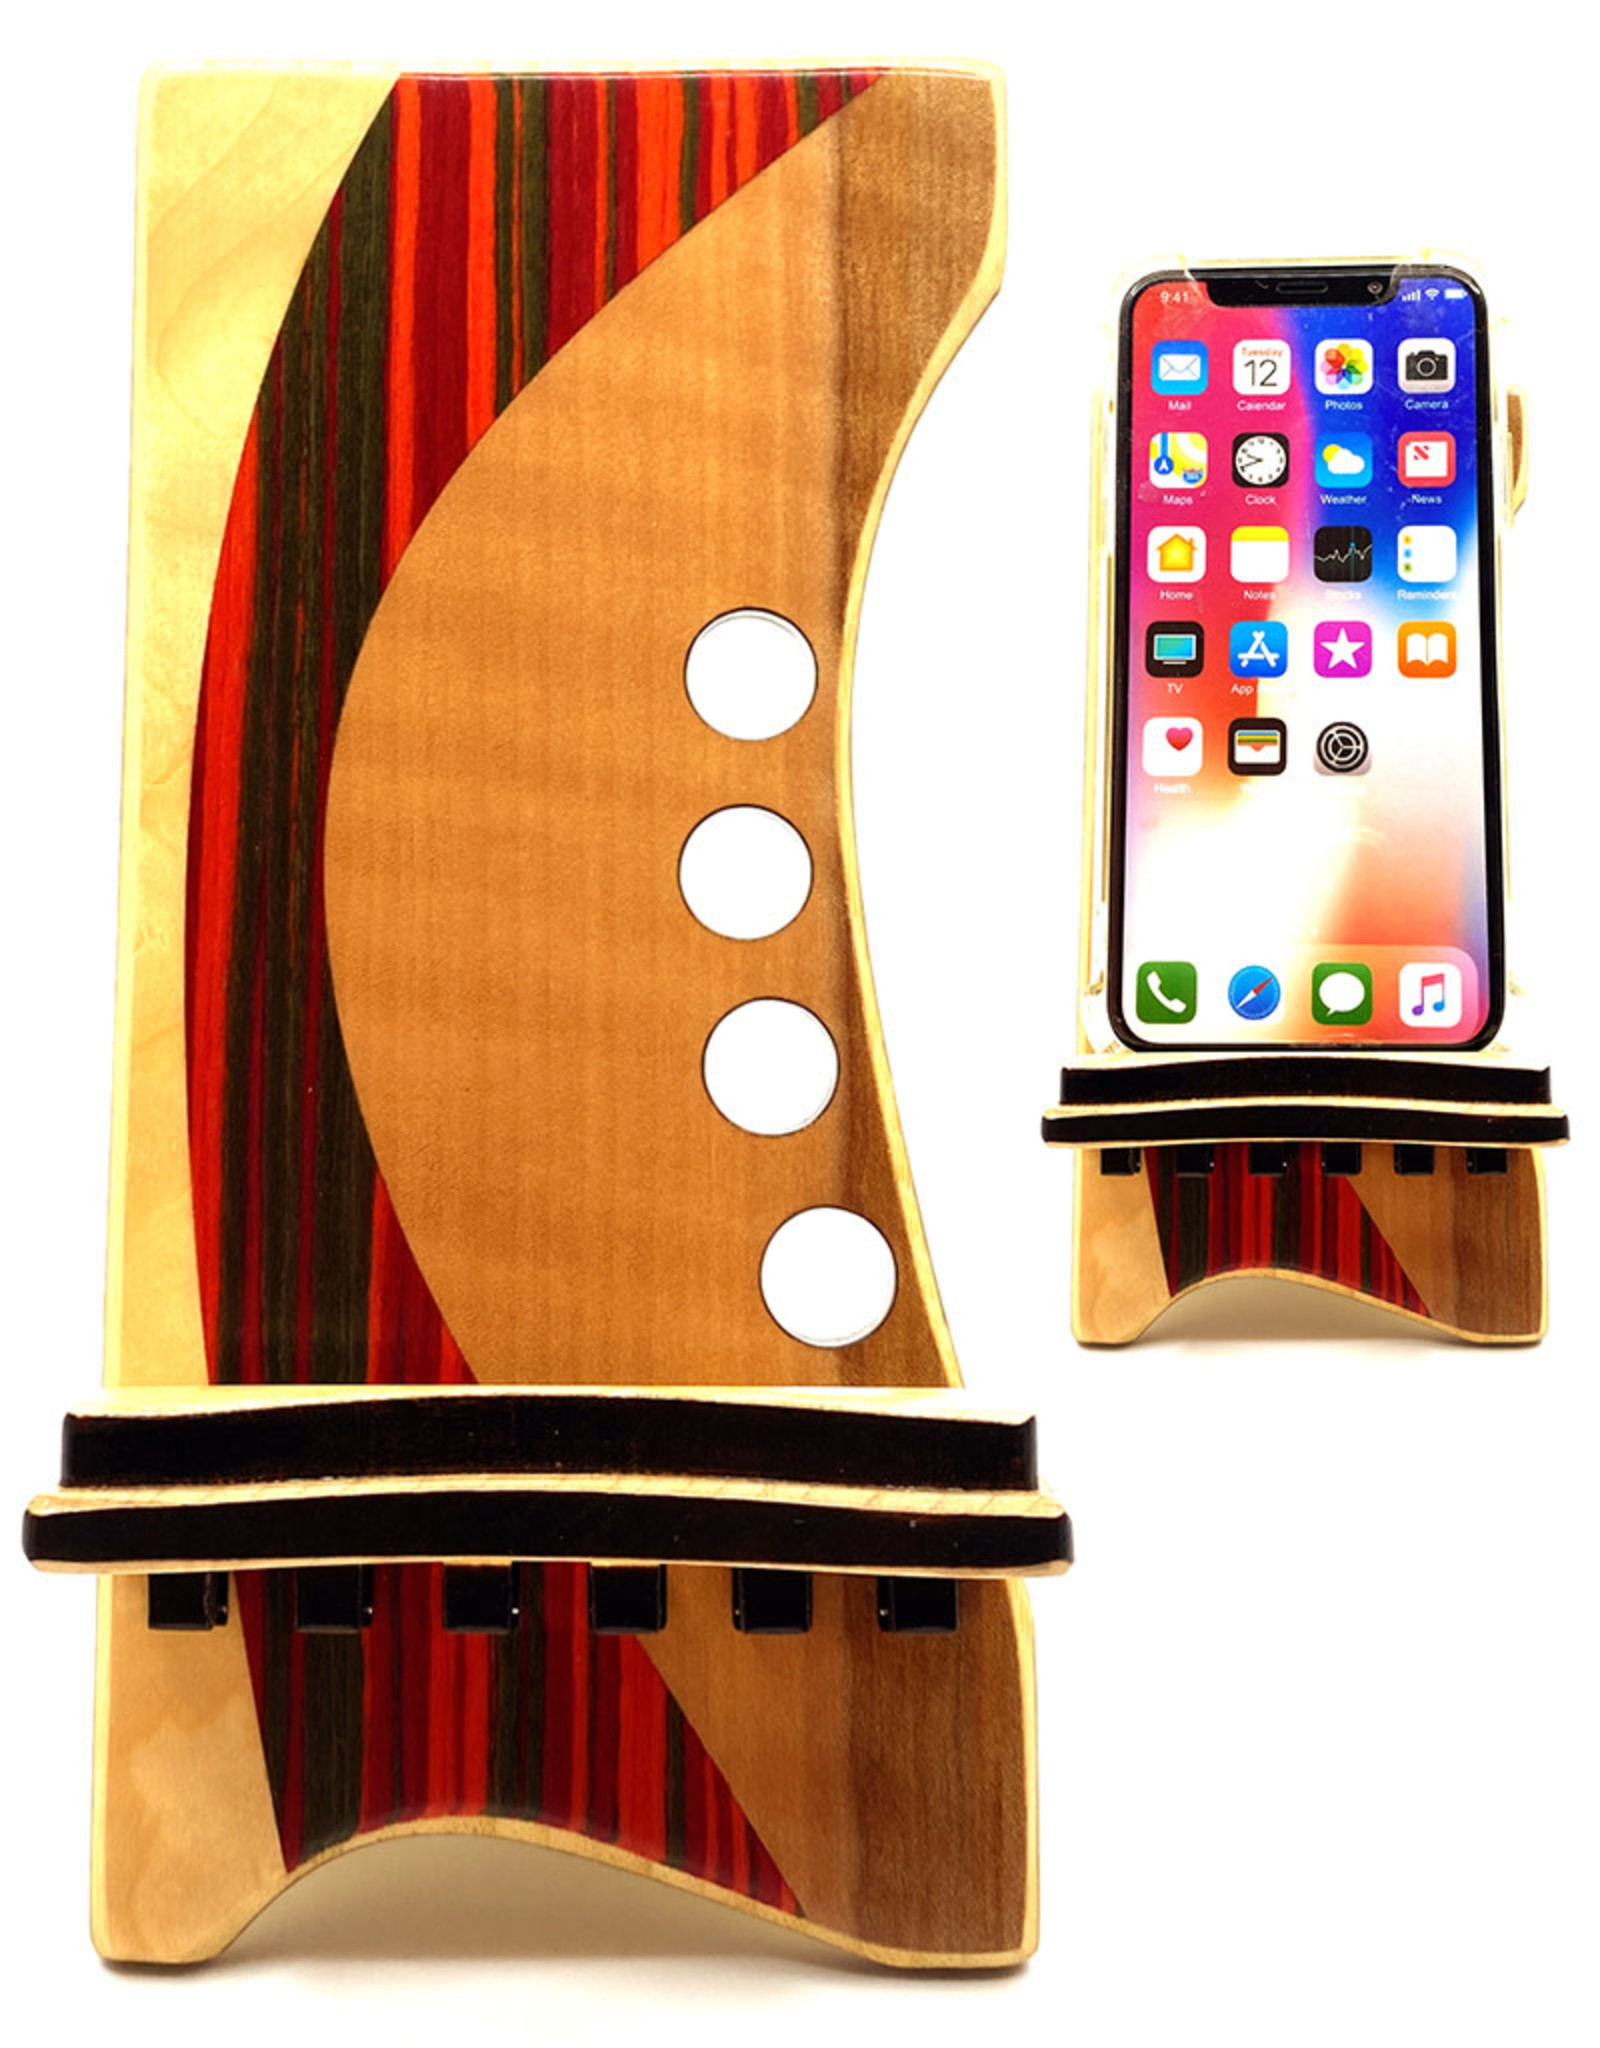 LOST ART WOODWORKS RED STRIPED IV MARQUETRY INLAID PHONE STAND